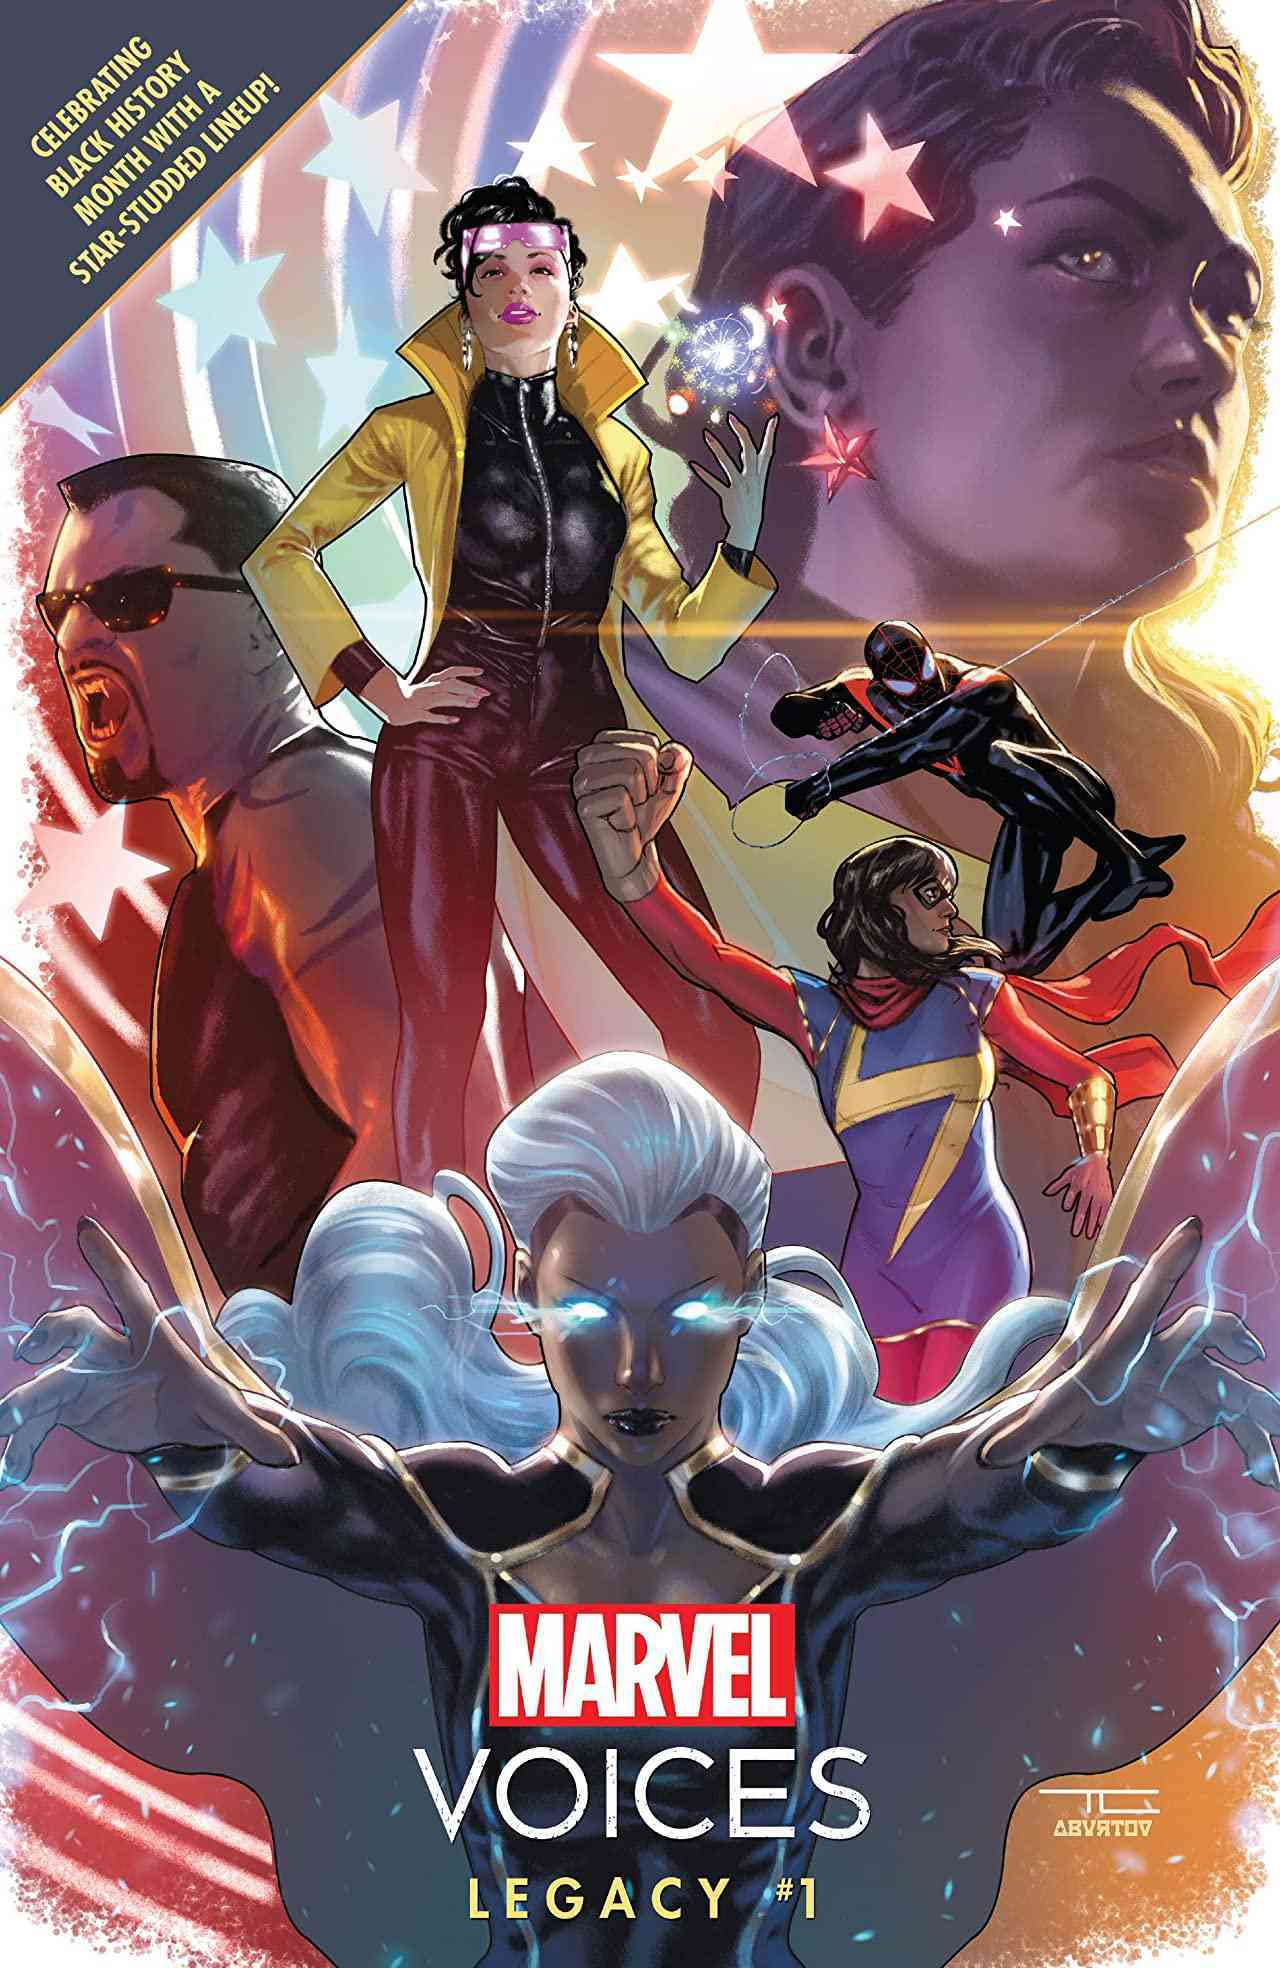 Marvel Voices Legacy #1